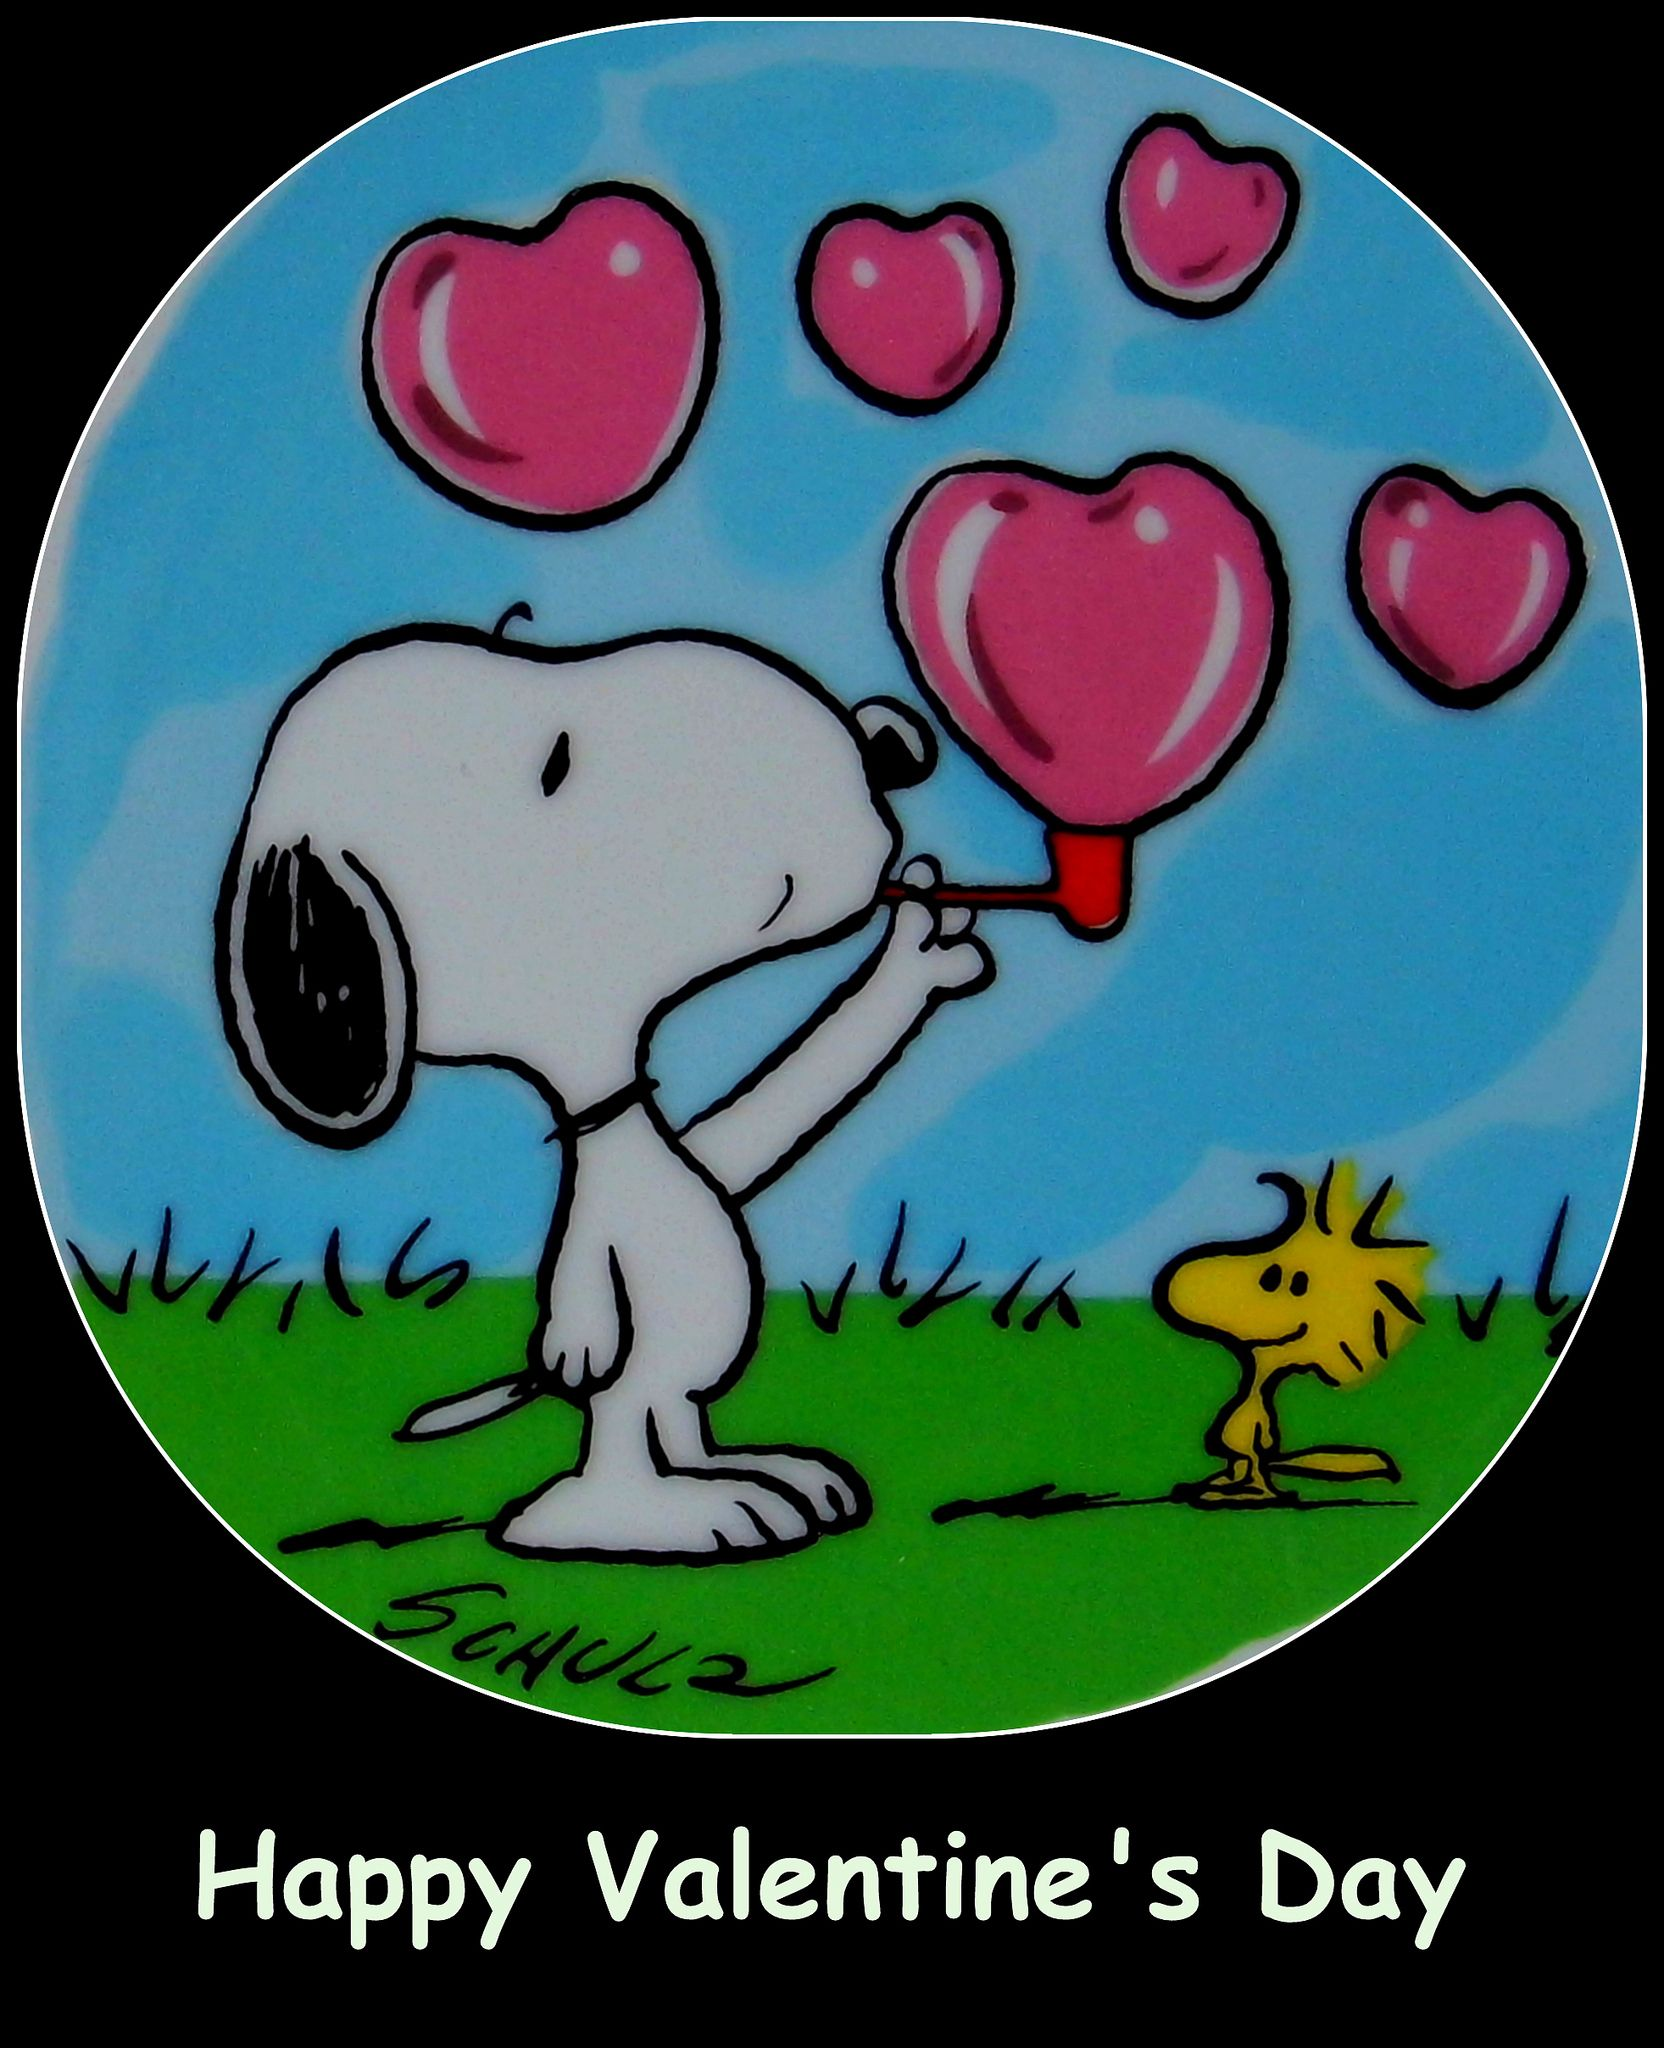 Happy Valentine S Day Greeting From Snoopy And Woodstock Valentine Cartoon Snoopy Valentine S Day Snoopy Valentine